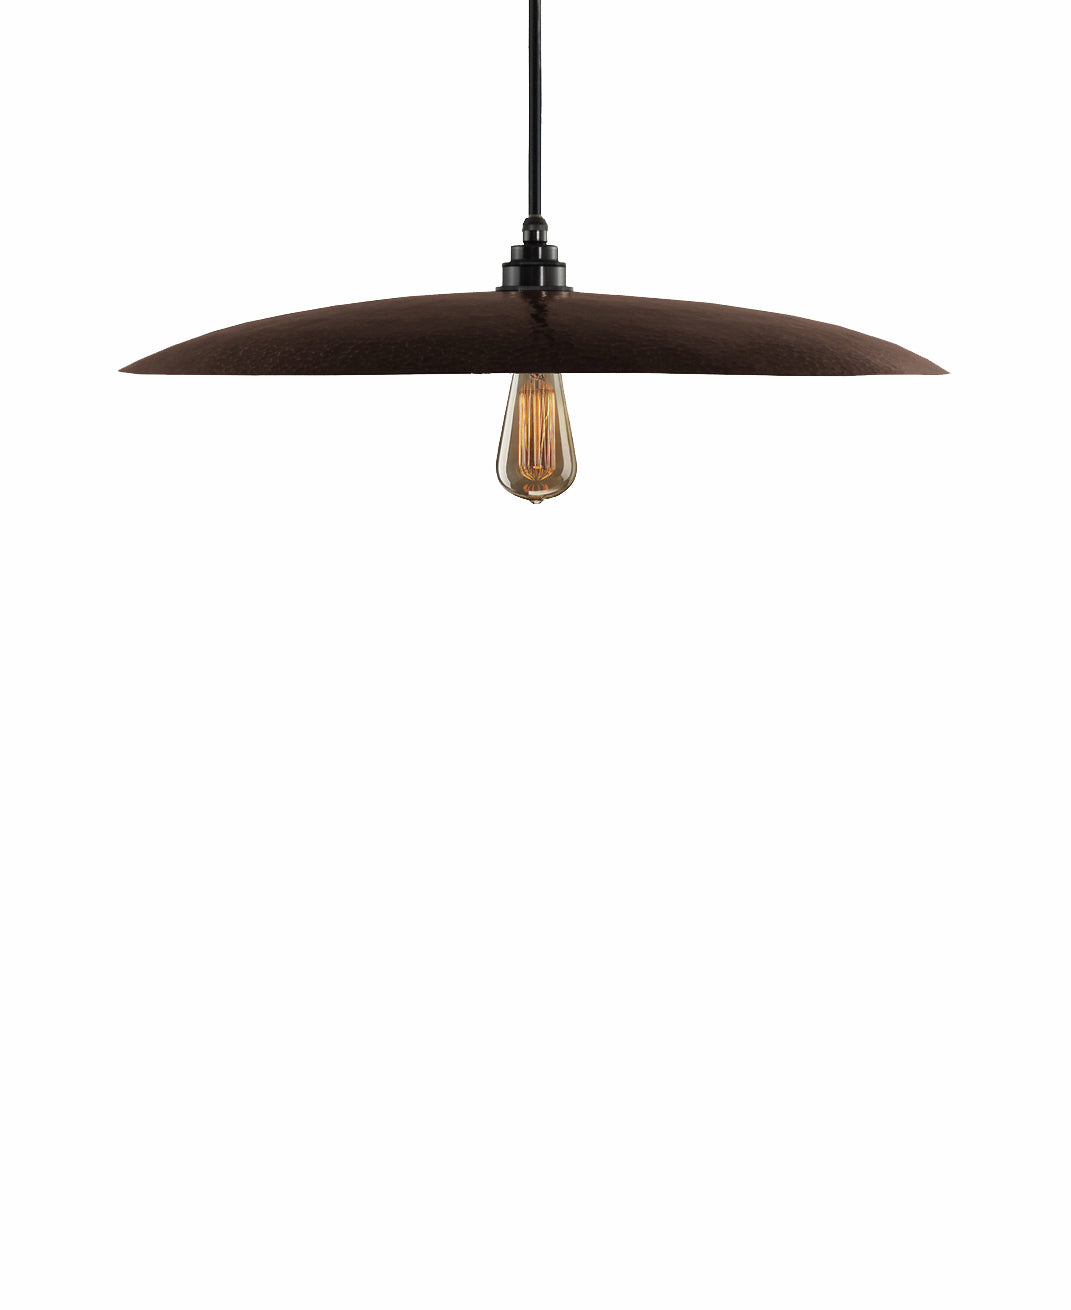 Beautiful Modern hand made large curved copper pendant lighting in a warm brown copper patina finish.